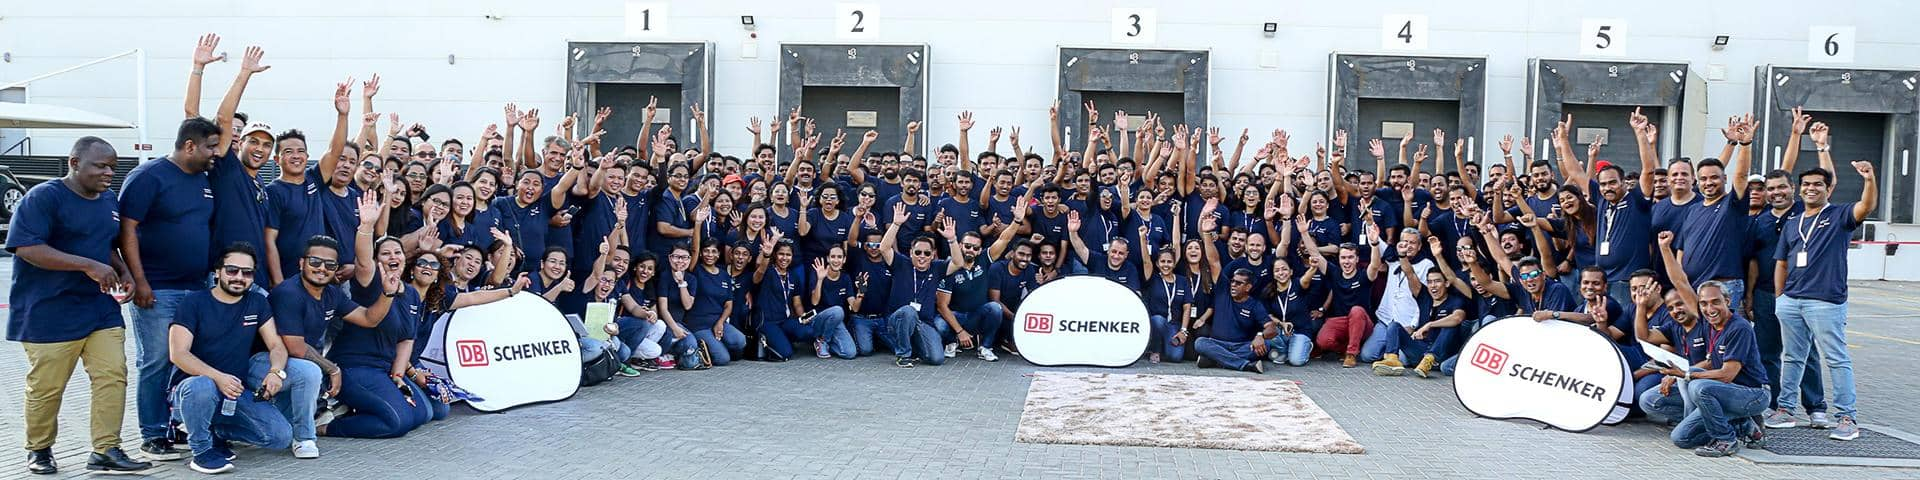 DB Schenker Culture Team